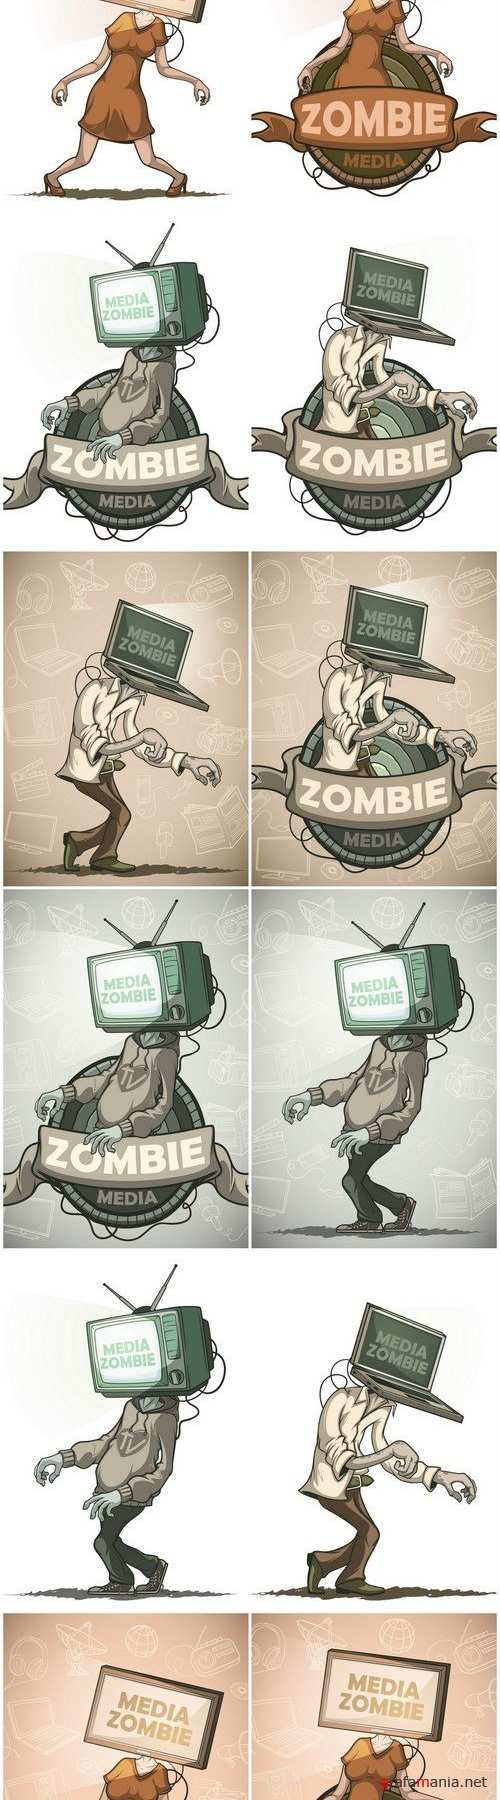 Media zombie - Set of 12xEPS, AI Professional Vector Stock